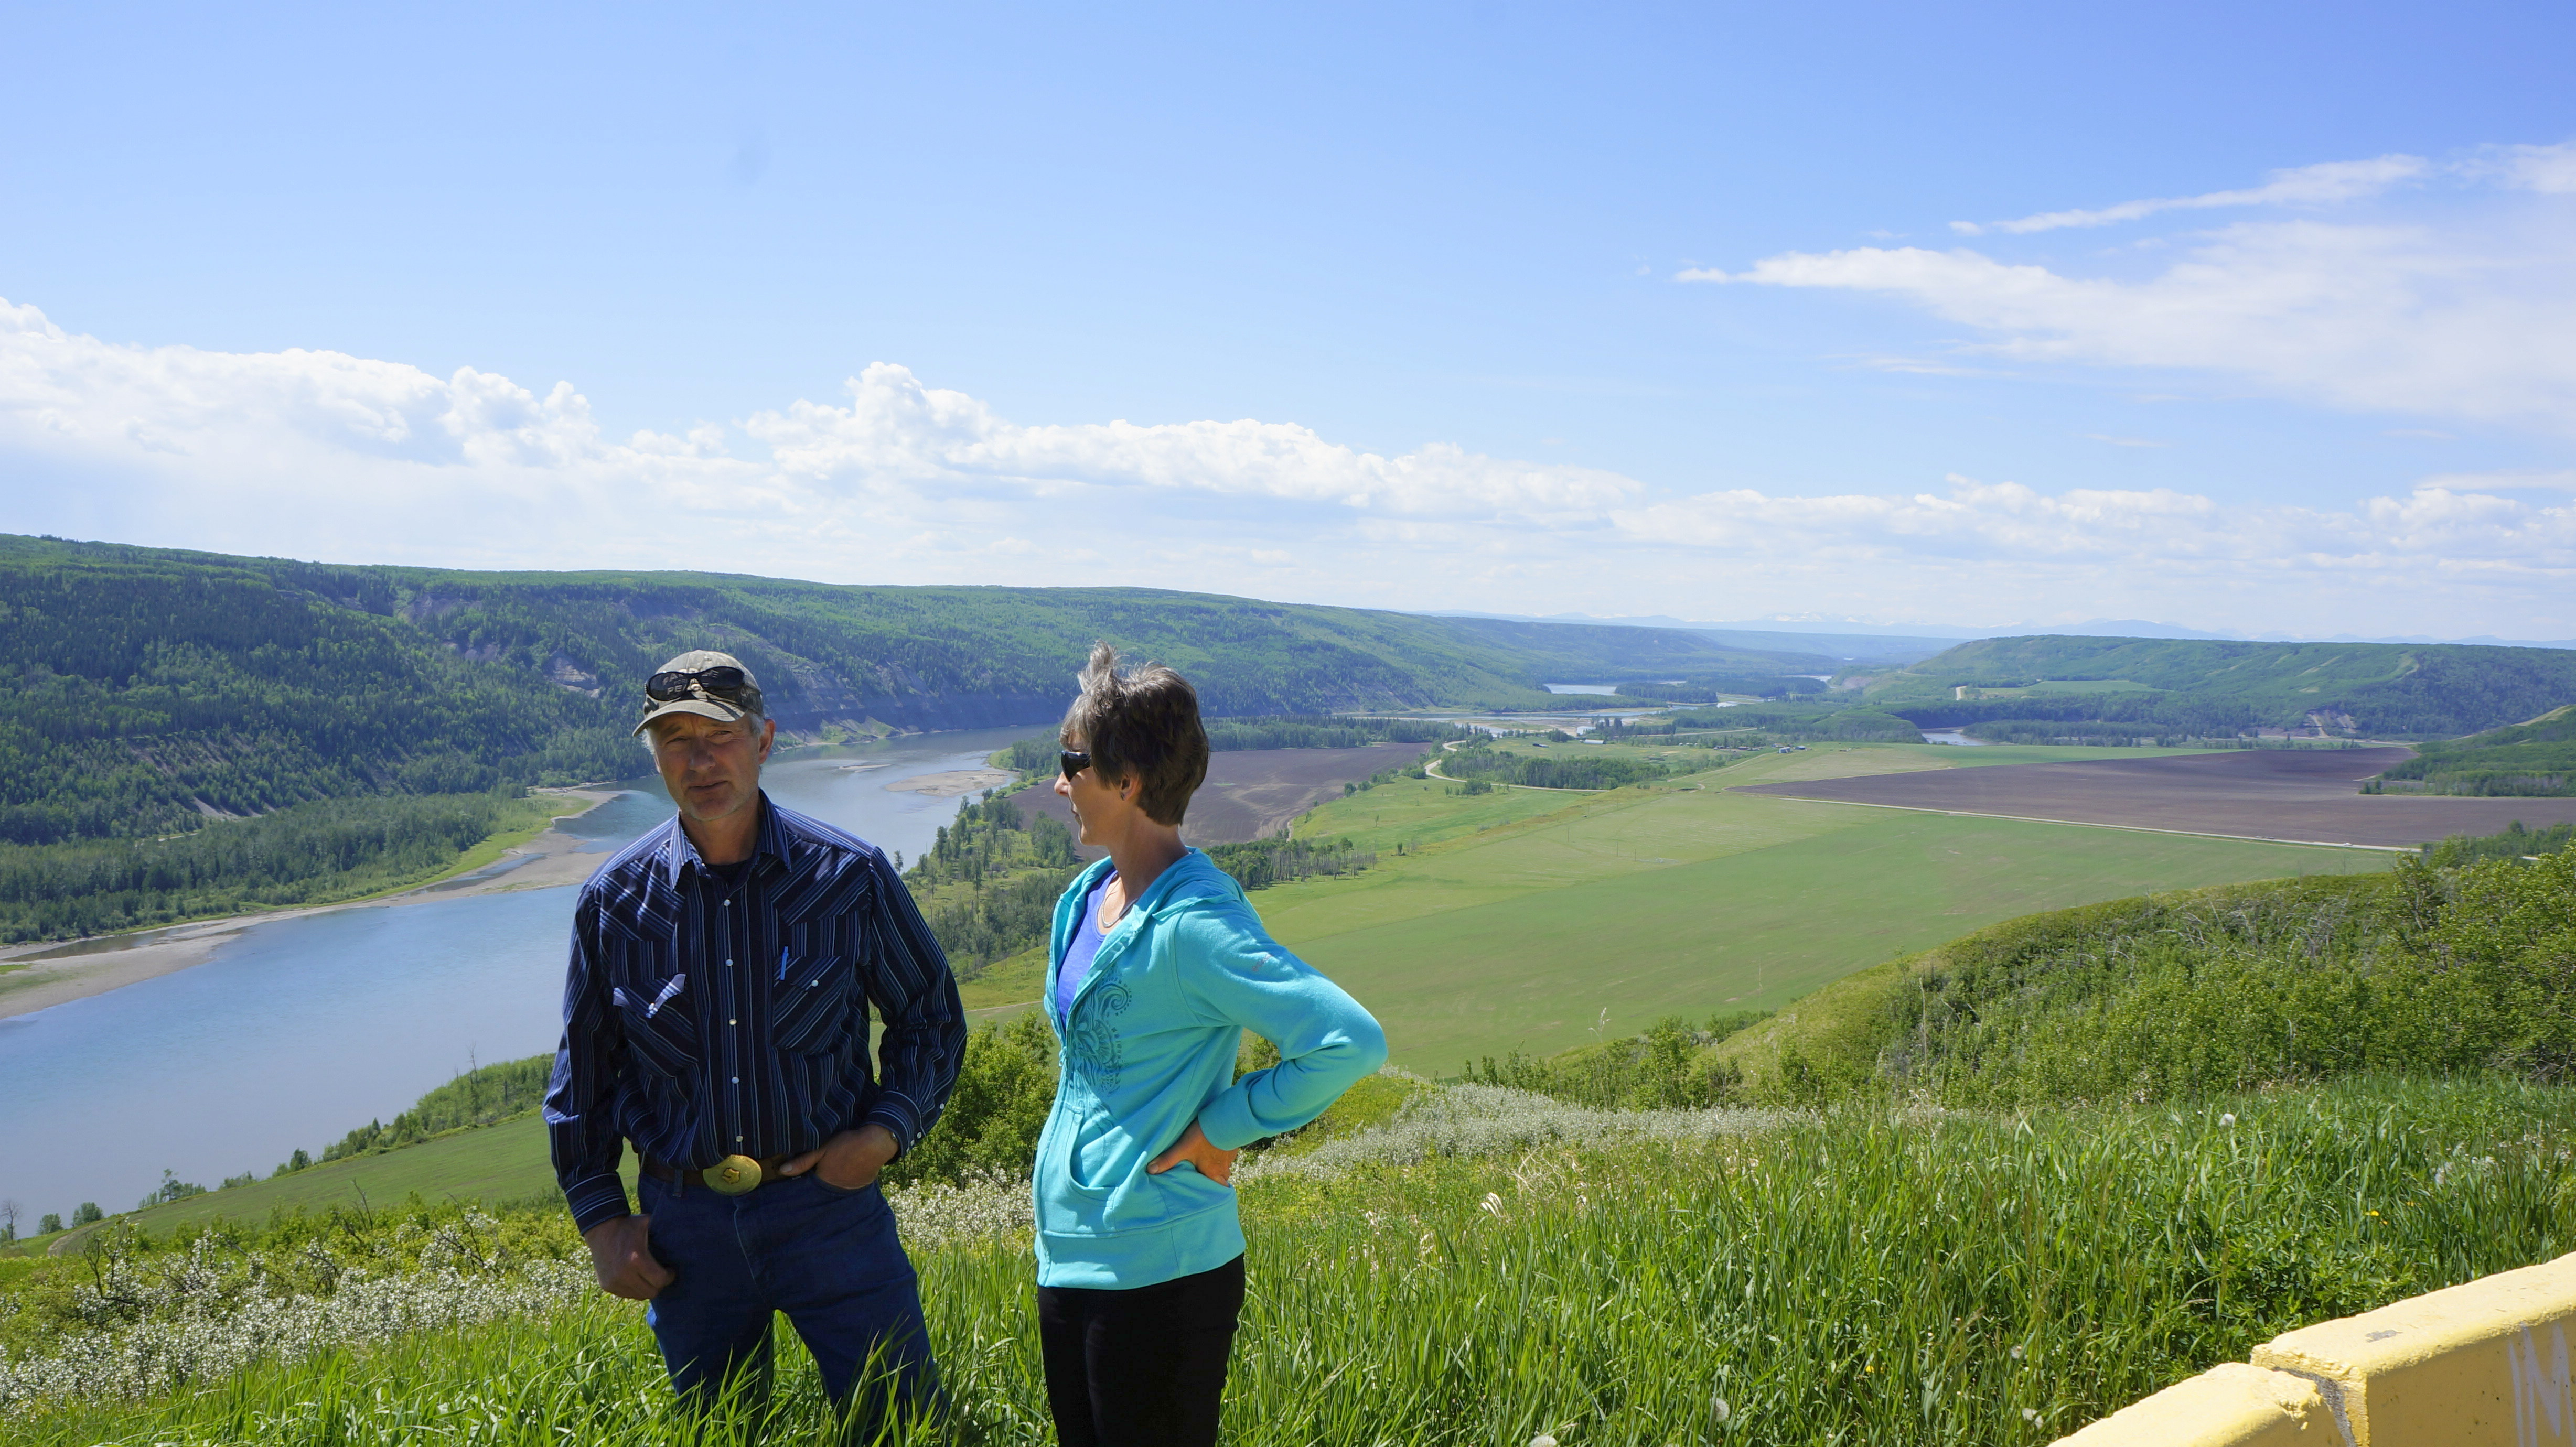 Ken and Arlene Boon at their farm in the Peace River Valley